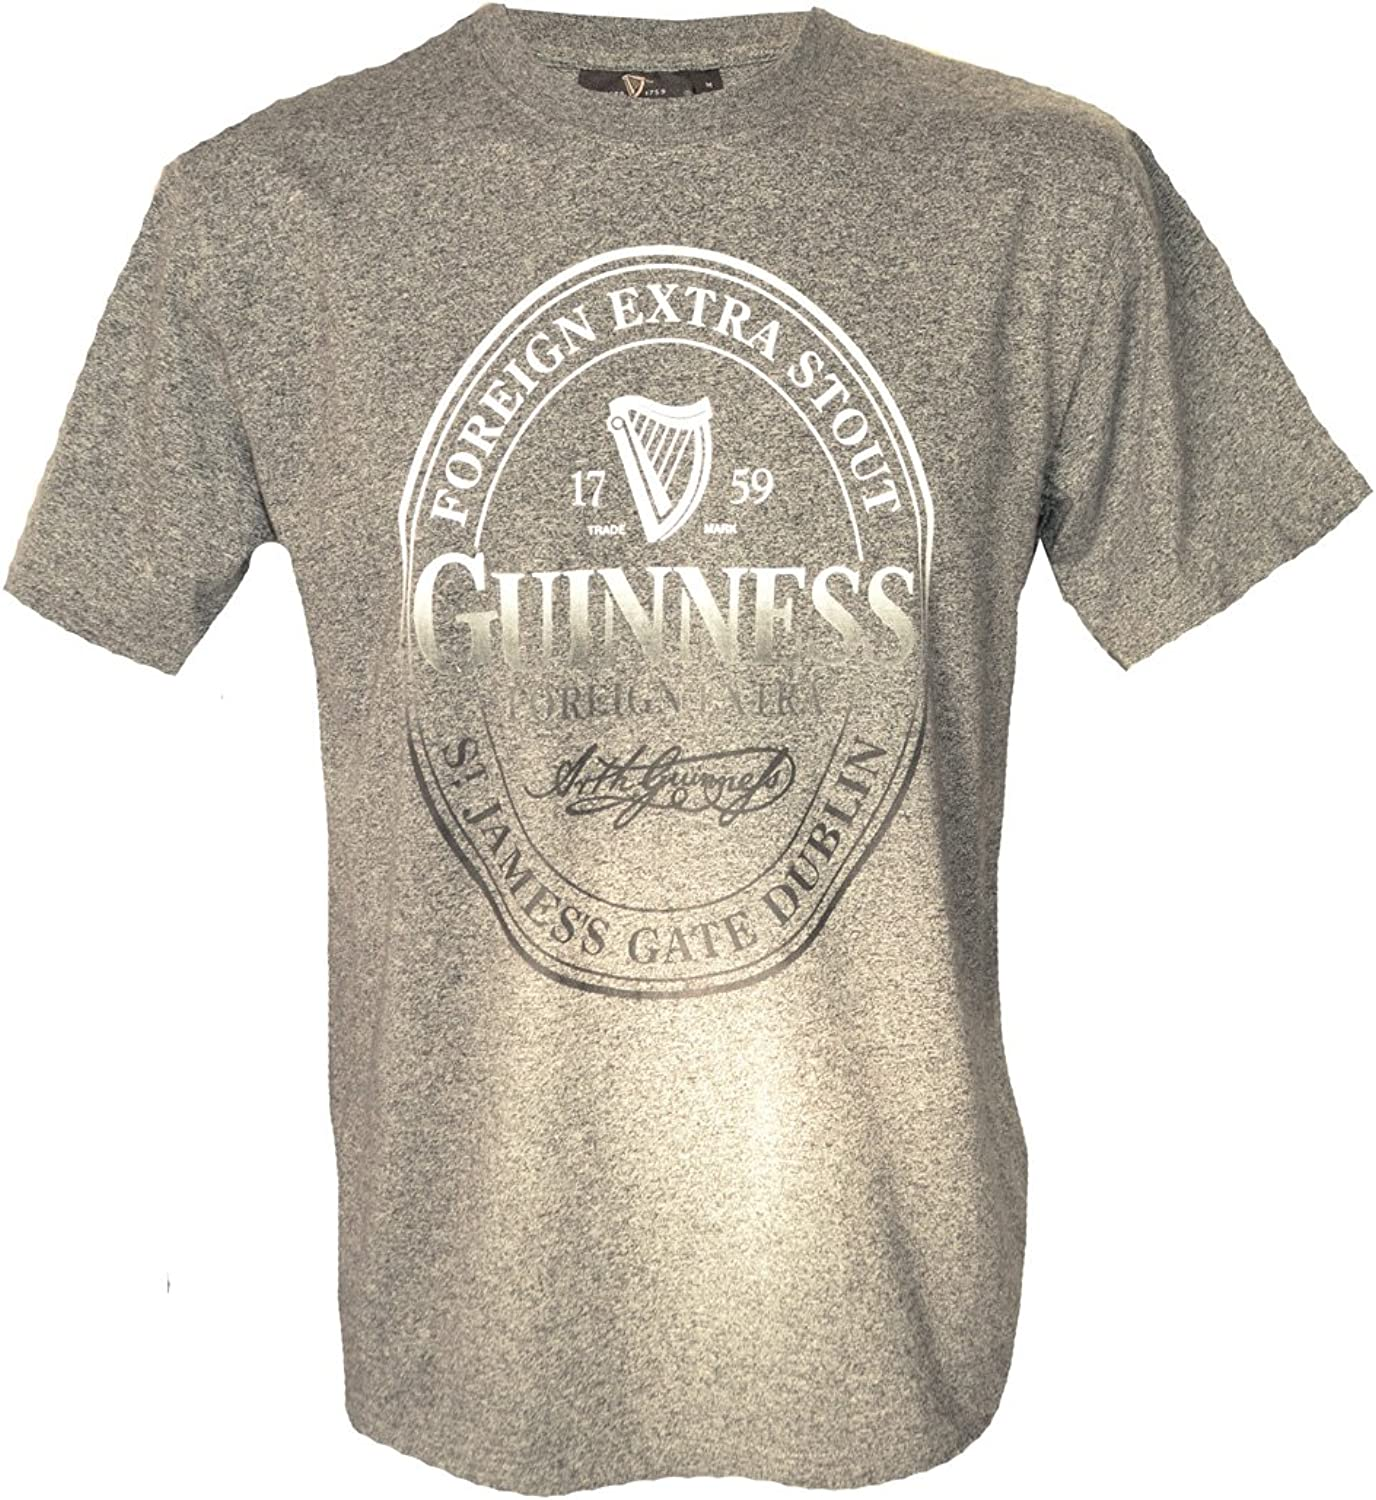 Guinness T-Shirt Foreign Extra Stout Bottle Label Print, Grey